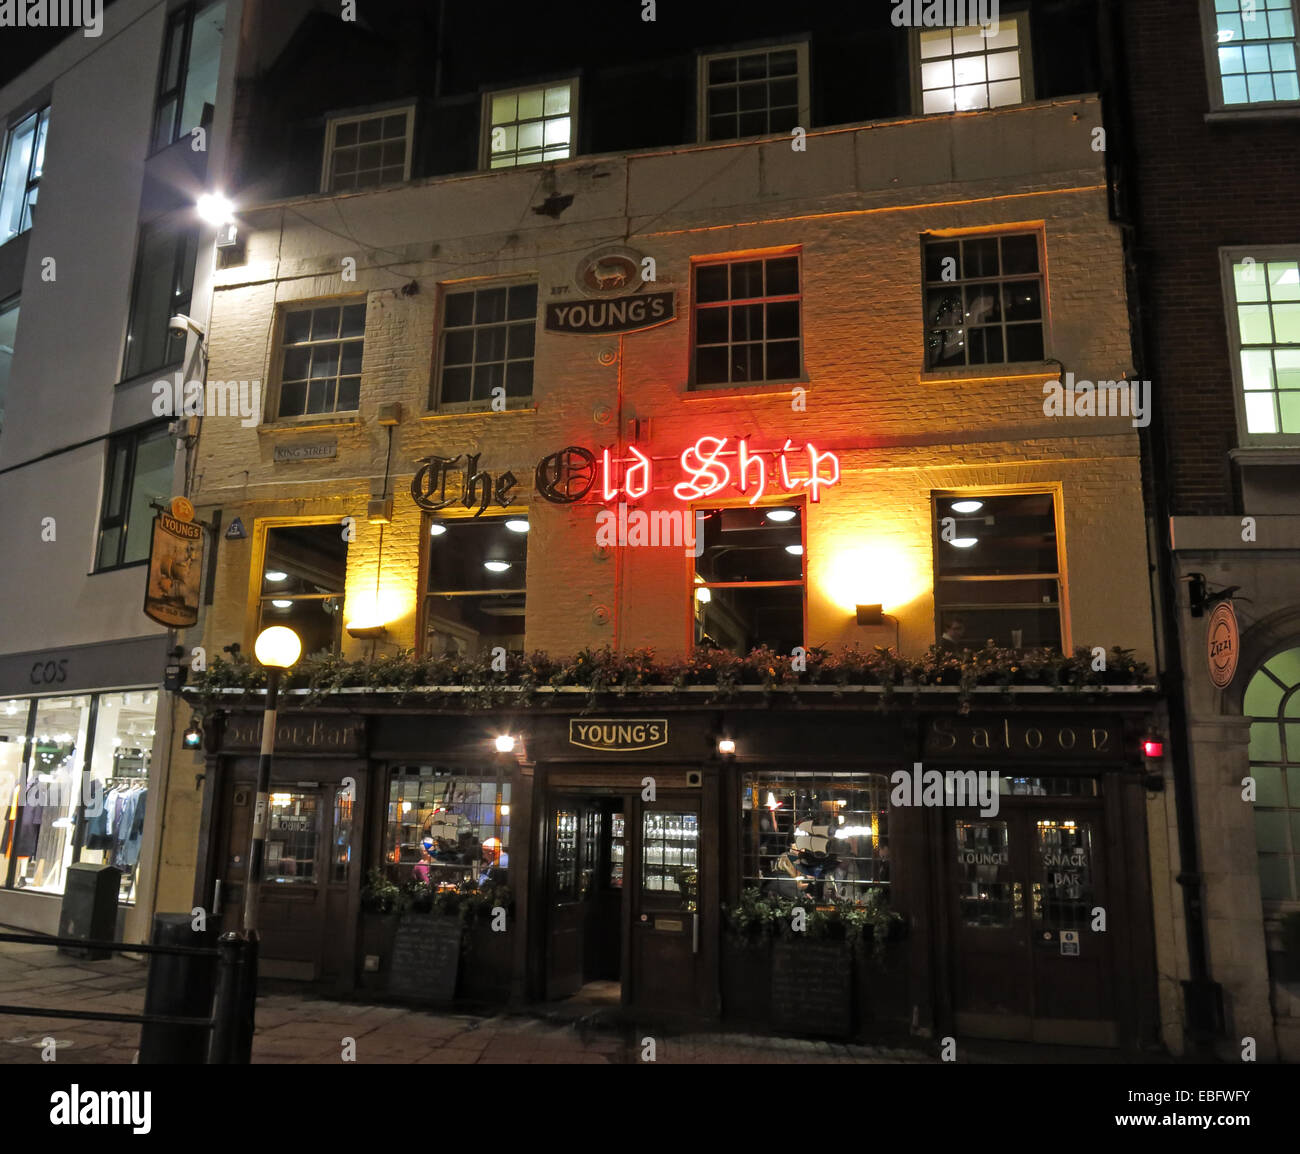 The Old Ship Pub, Youngs, Richmond, London at Night Stock Photo